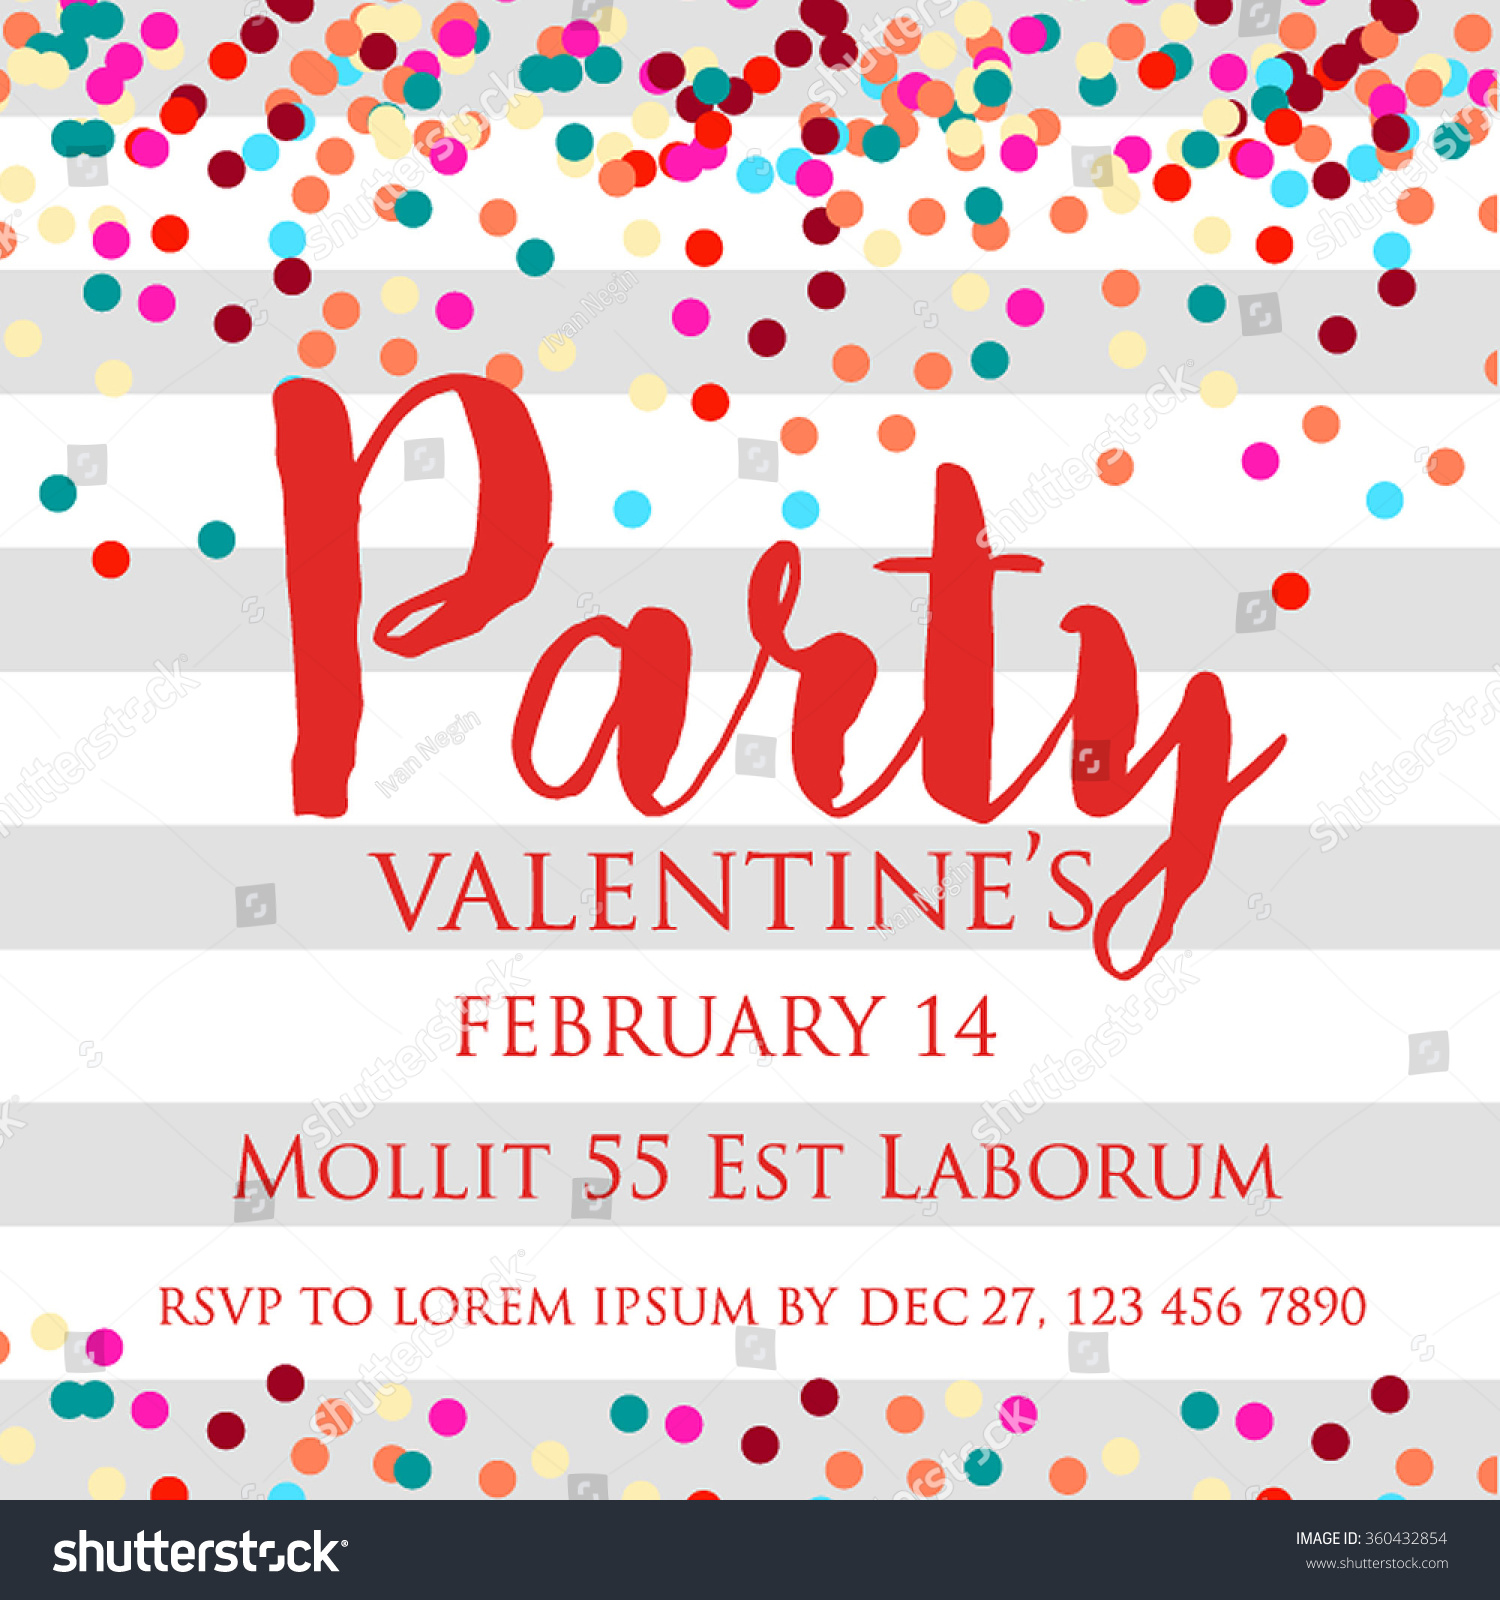 Valentines Party Invitations Gallery - Party Invitations Ideas